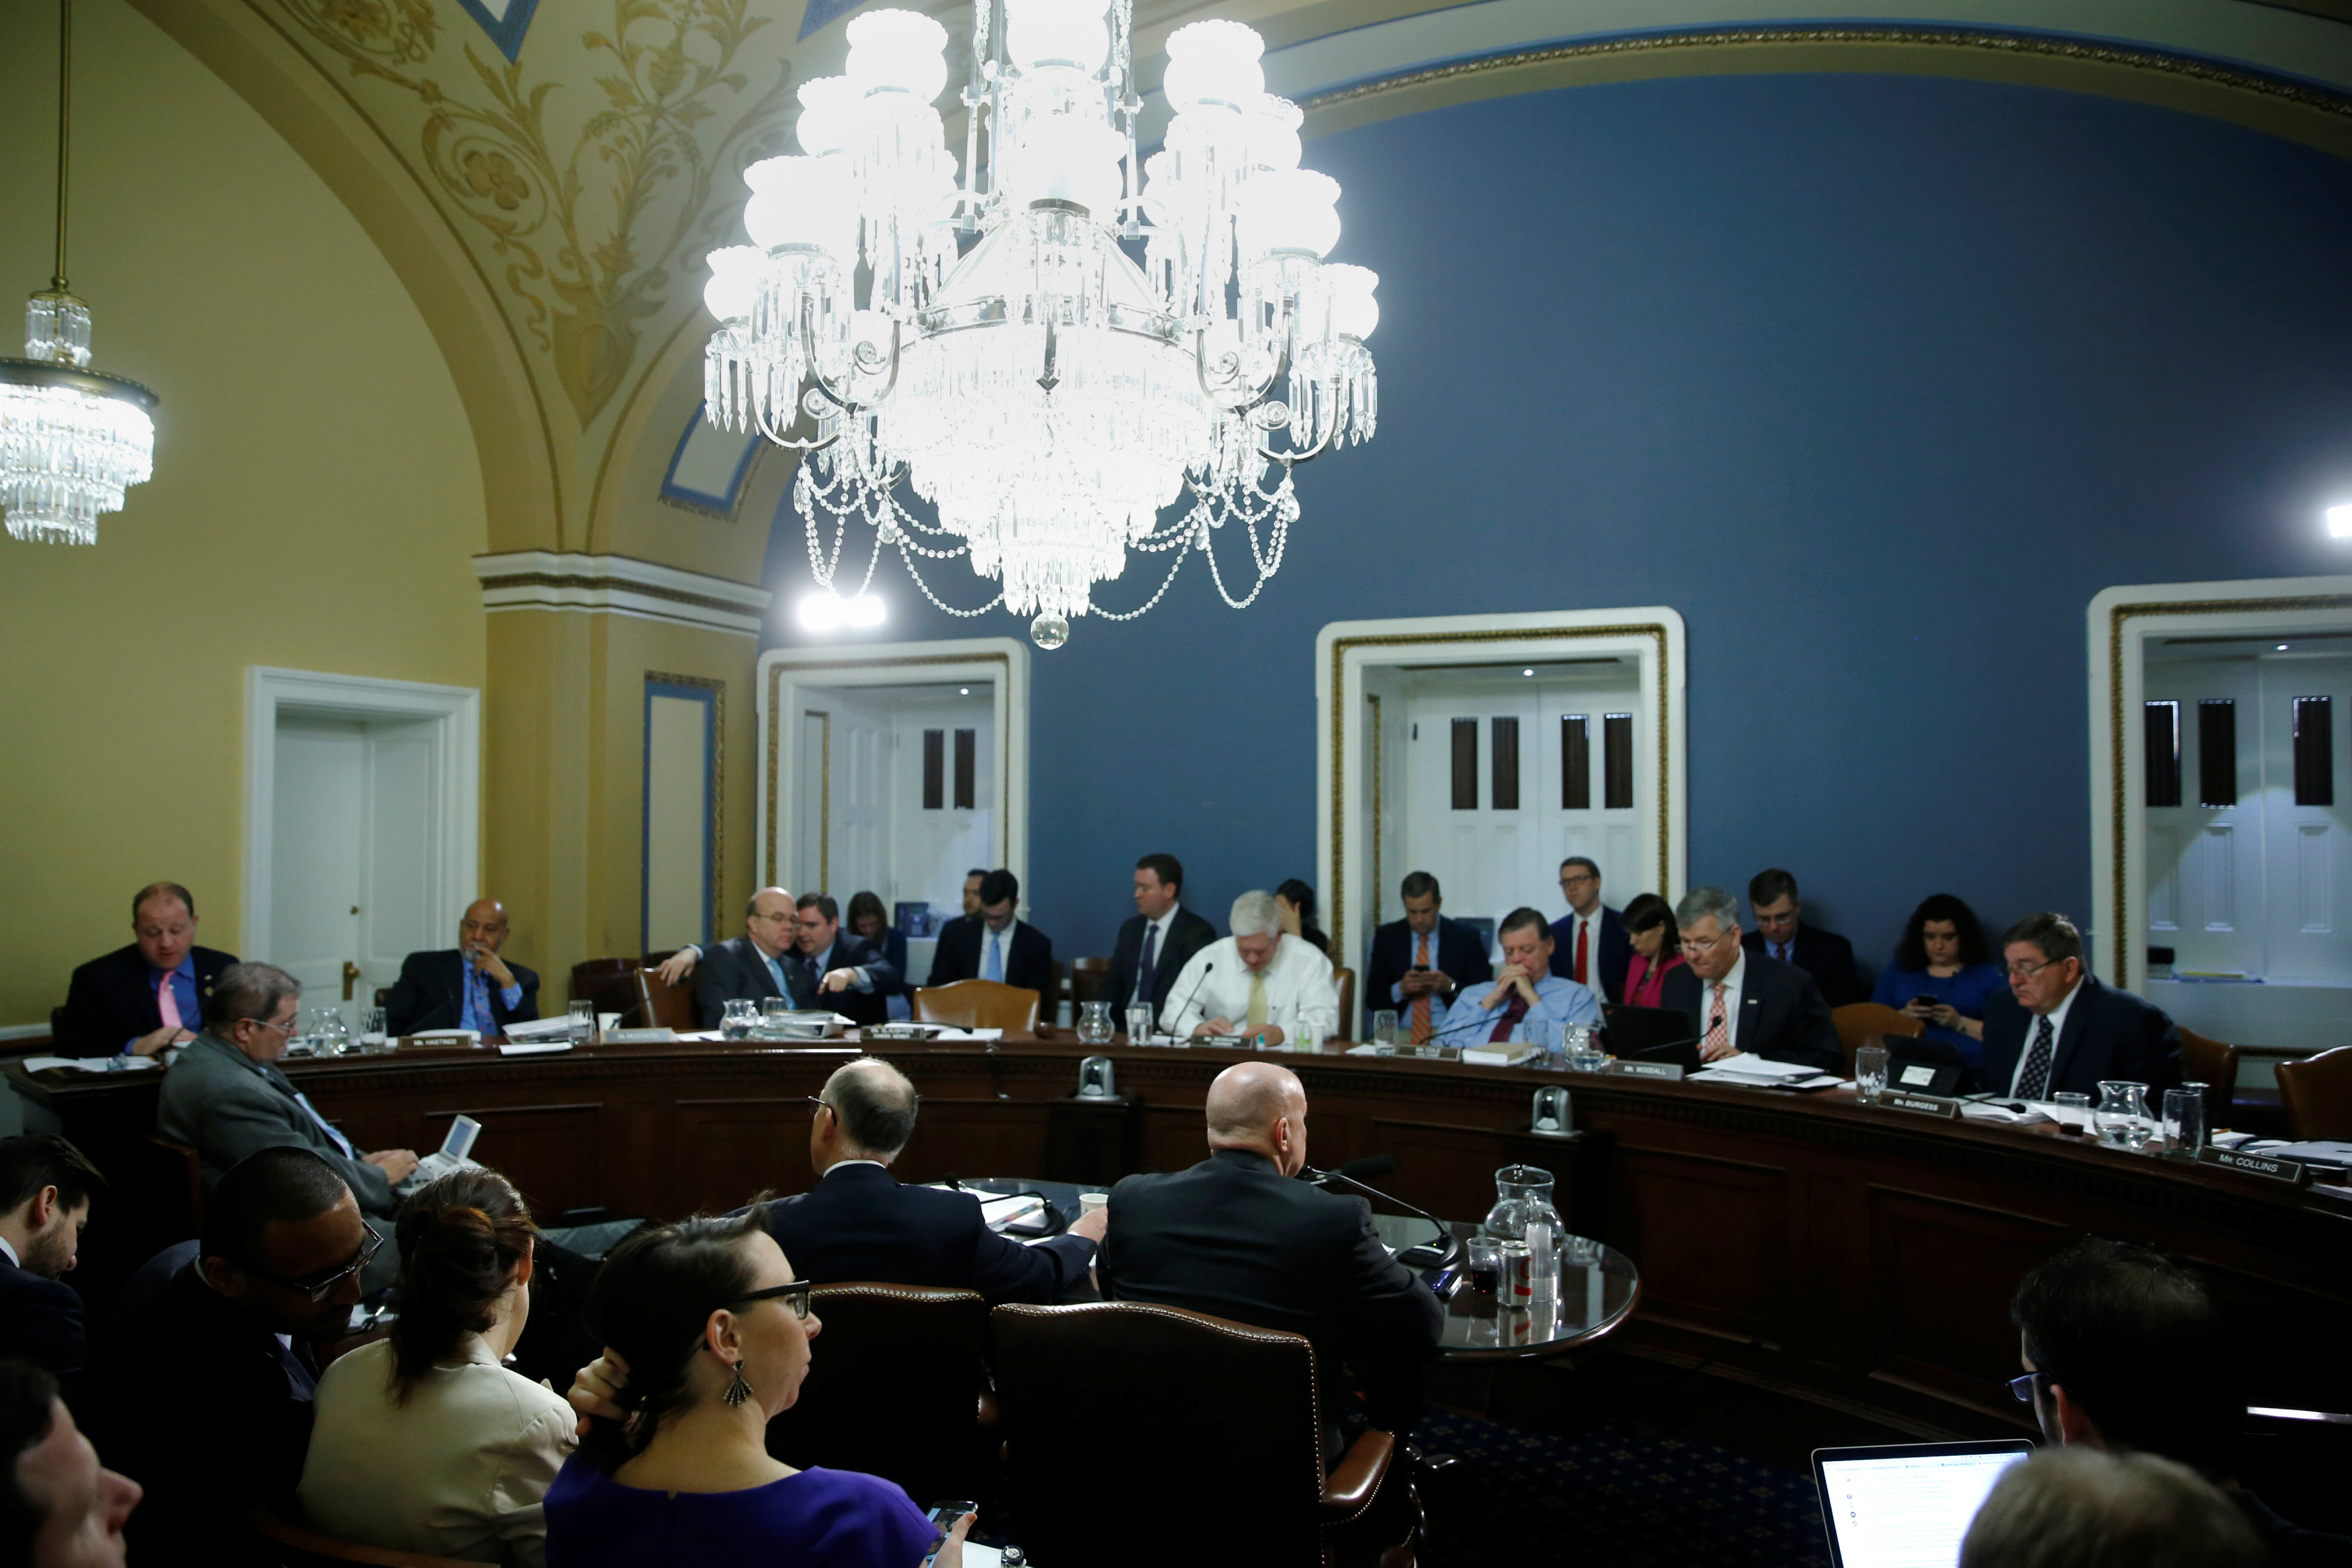 U.S. House Energy and Commerce Committee Chairman Representative Greg Walden (R-OR) (center L, at table) and Ways and Means Committee Chairman Representative Kevin Brady (R-TX) (center R, at table) testify at an early-morning Rules Committee hearing as Congress considers health care legislation to repeal Obamacare at the U.S. Capitol in Washington, U.S., March 24, 2017. REUTERS/Jonathan Ernst